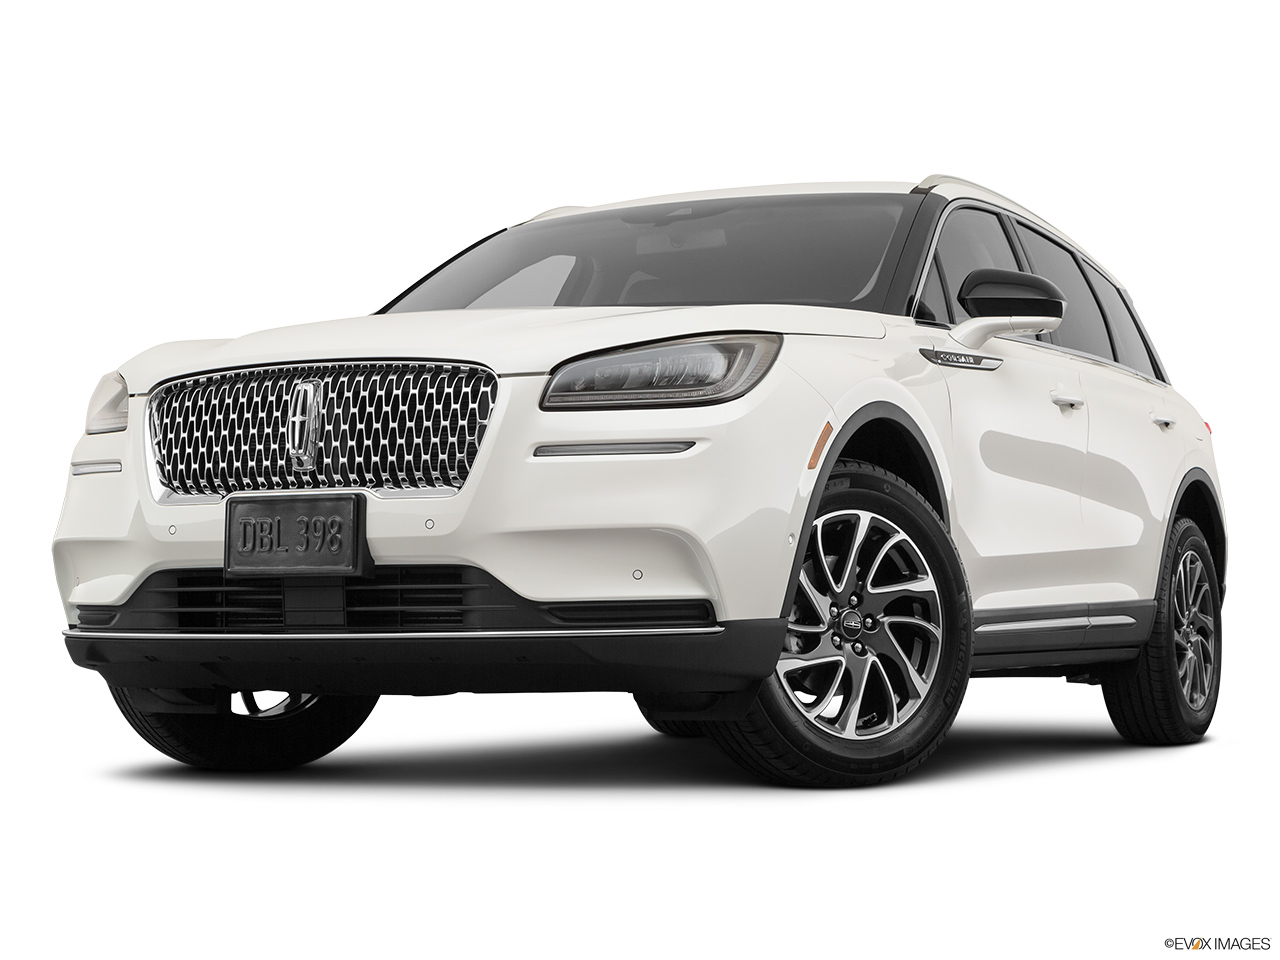 2020 Lincoln Corsair Standard Front angle view, low wide perspective.